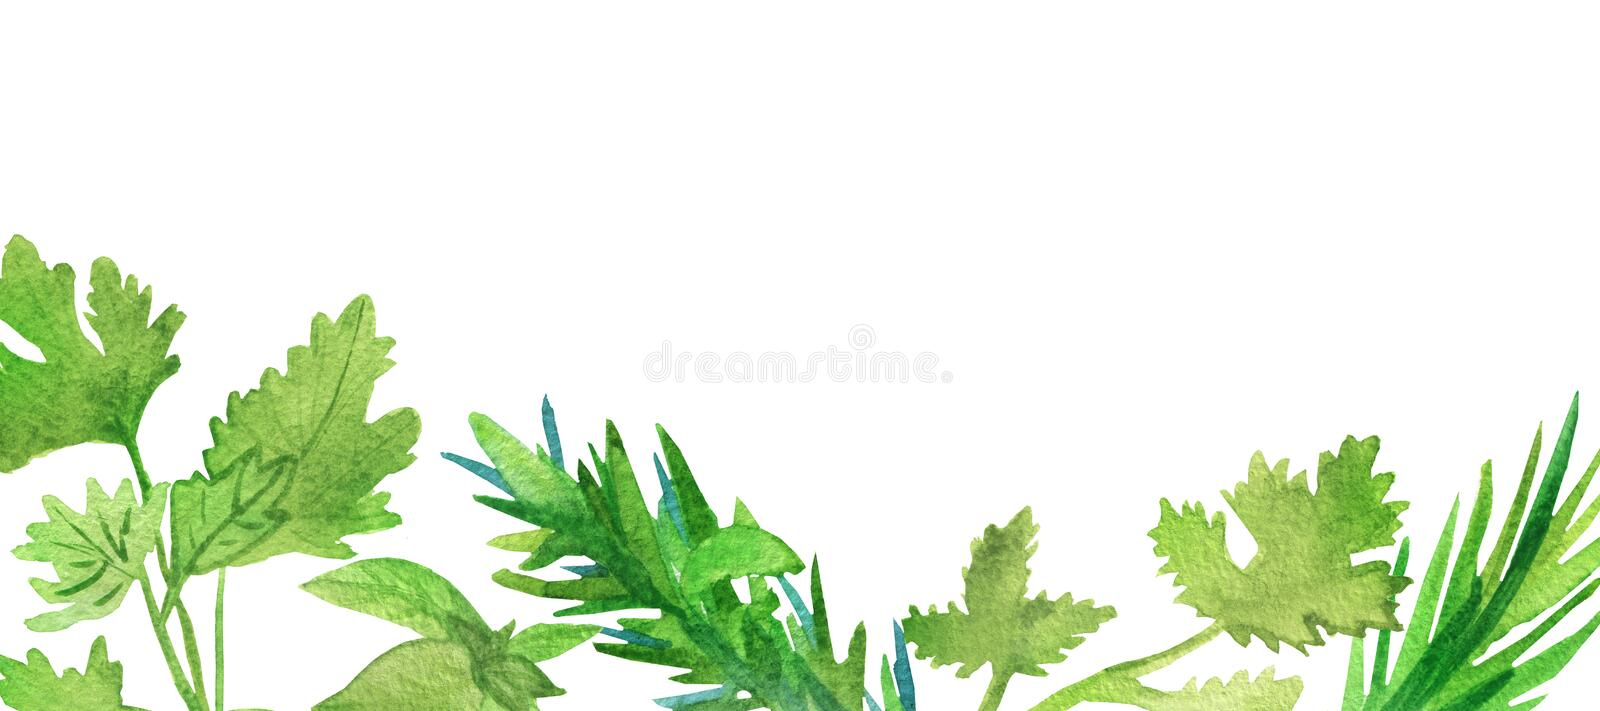 Watercolor banner of spicy plants. Green seasoning plants isolated on white background. Spicy herbs: coriander, rosemary, parsley. Marjoram, for beautiful stock illustration